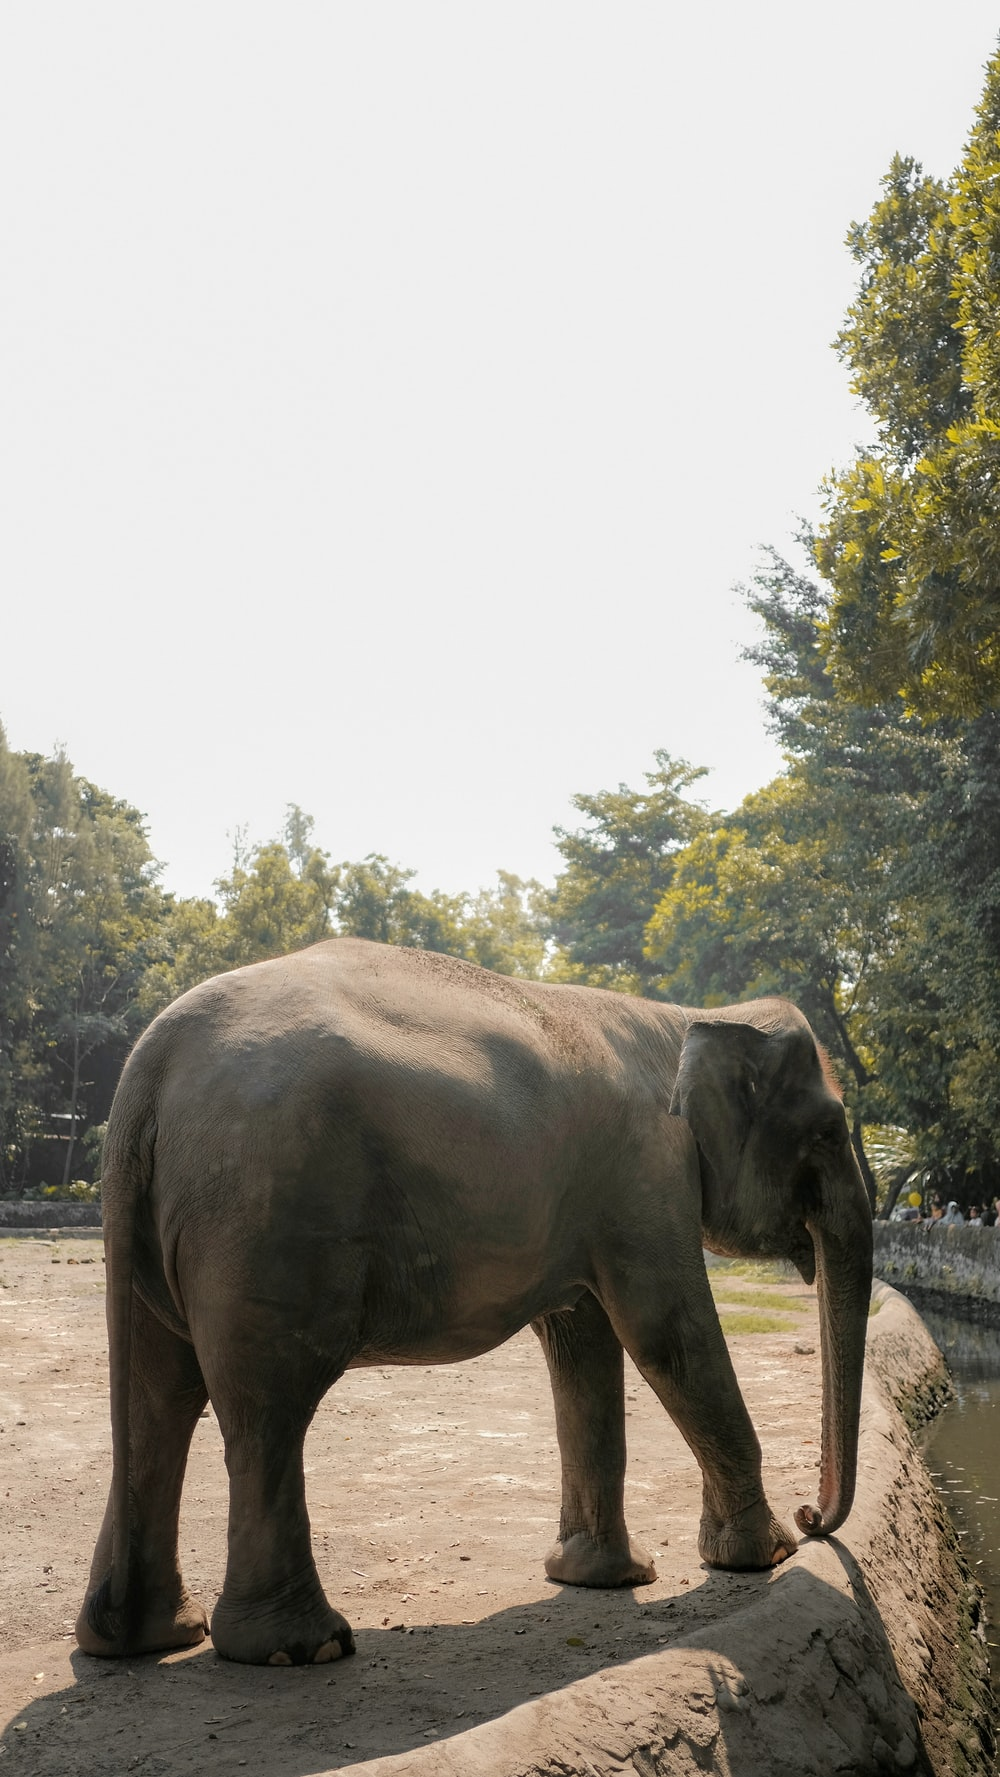 Gajah Pictures Download Free Images On Unsplash